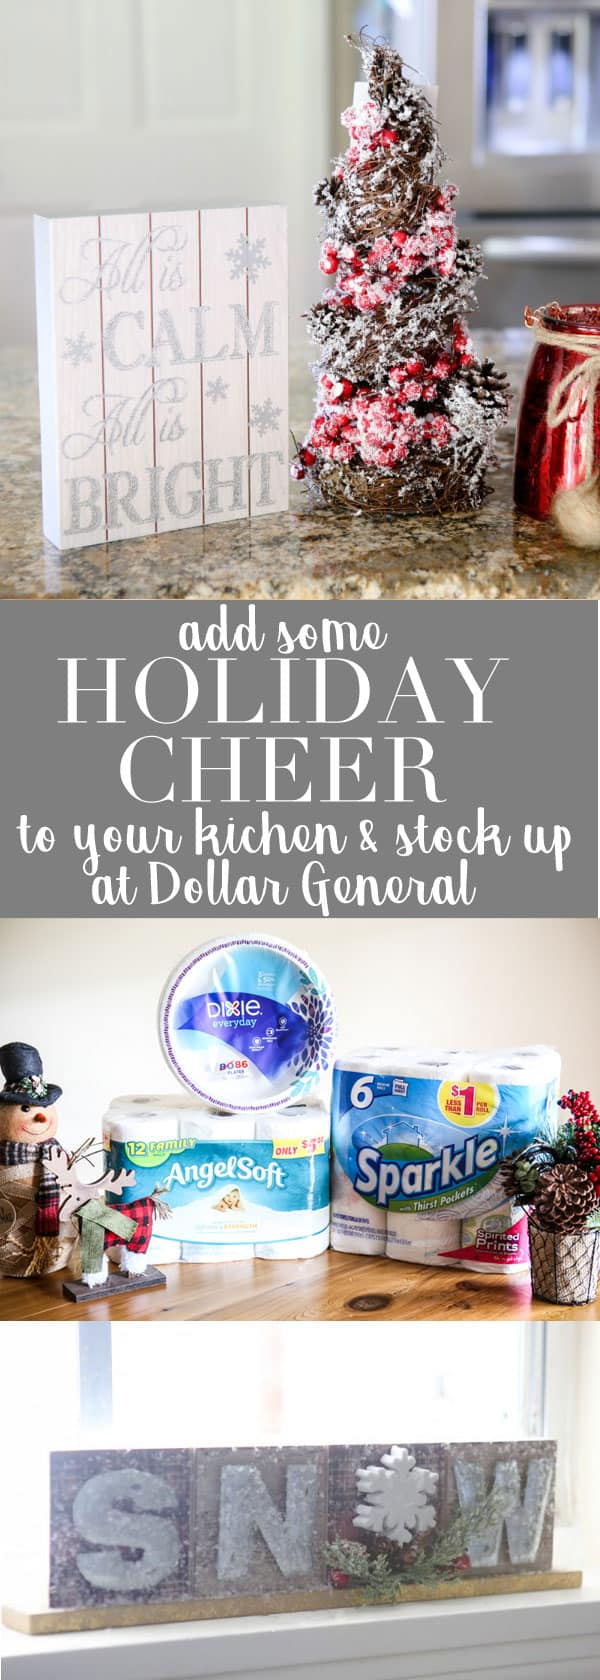 I found some beautiful little holiday items at Dollar General this year while I was stocking up on all the essentials for holiday entertaining. See my fun post on How to Add Some Holiday Cheer to Your Kitchen This Year #GPHolidayAtHome #CollectiveBias #ad #christmas #decor #kitchen